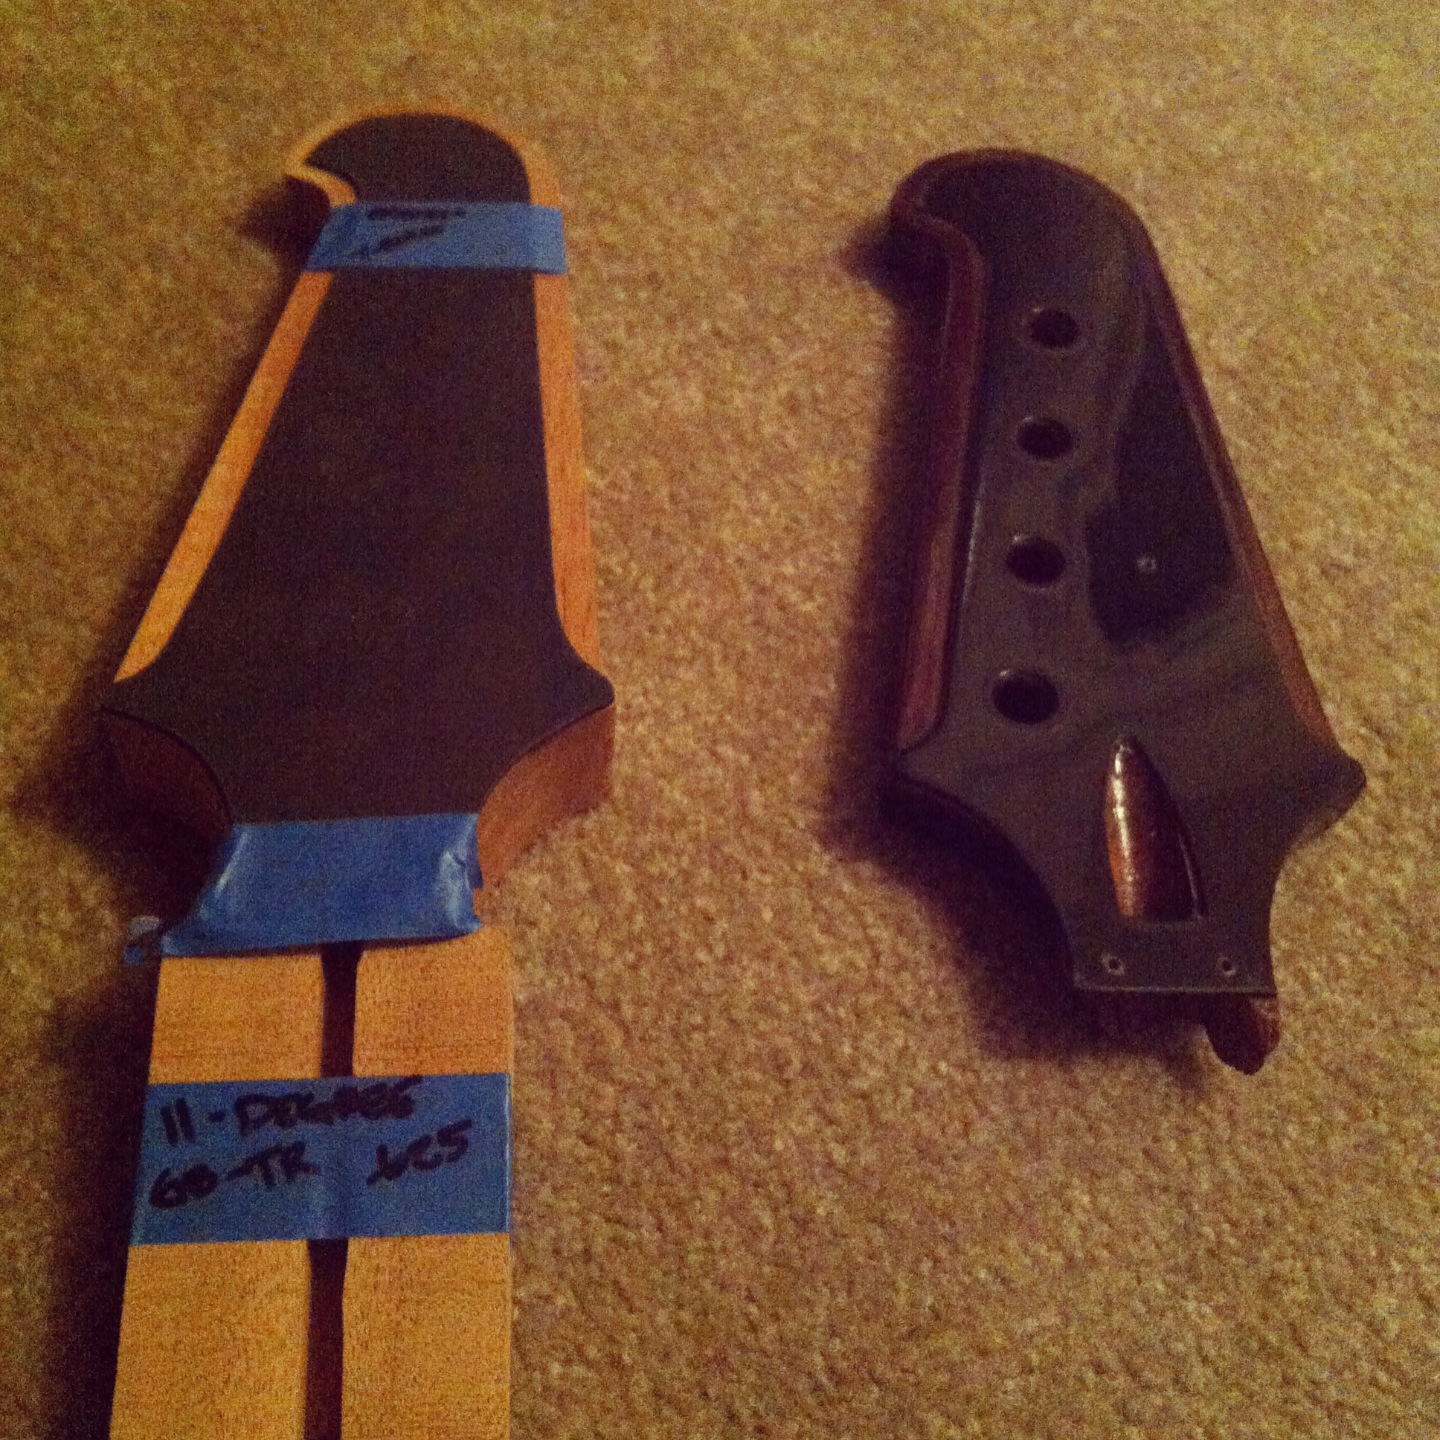 New headstock rough cut out